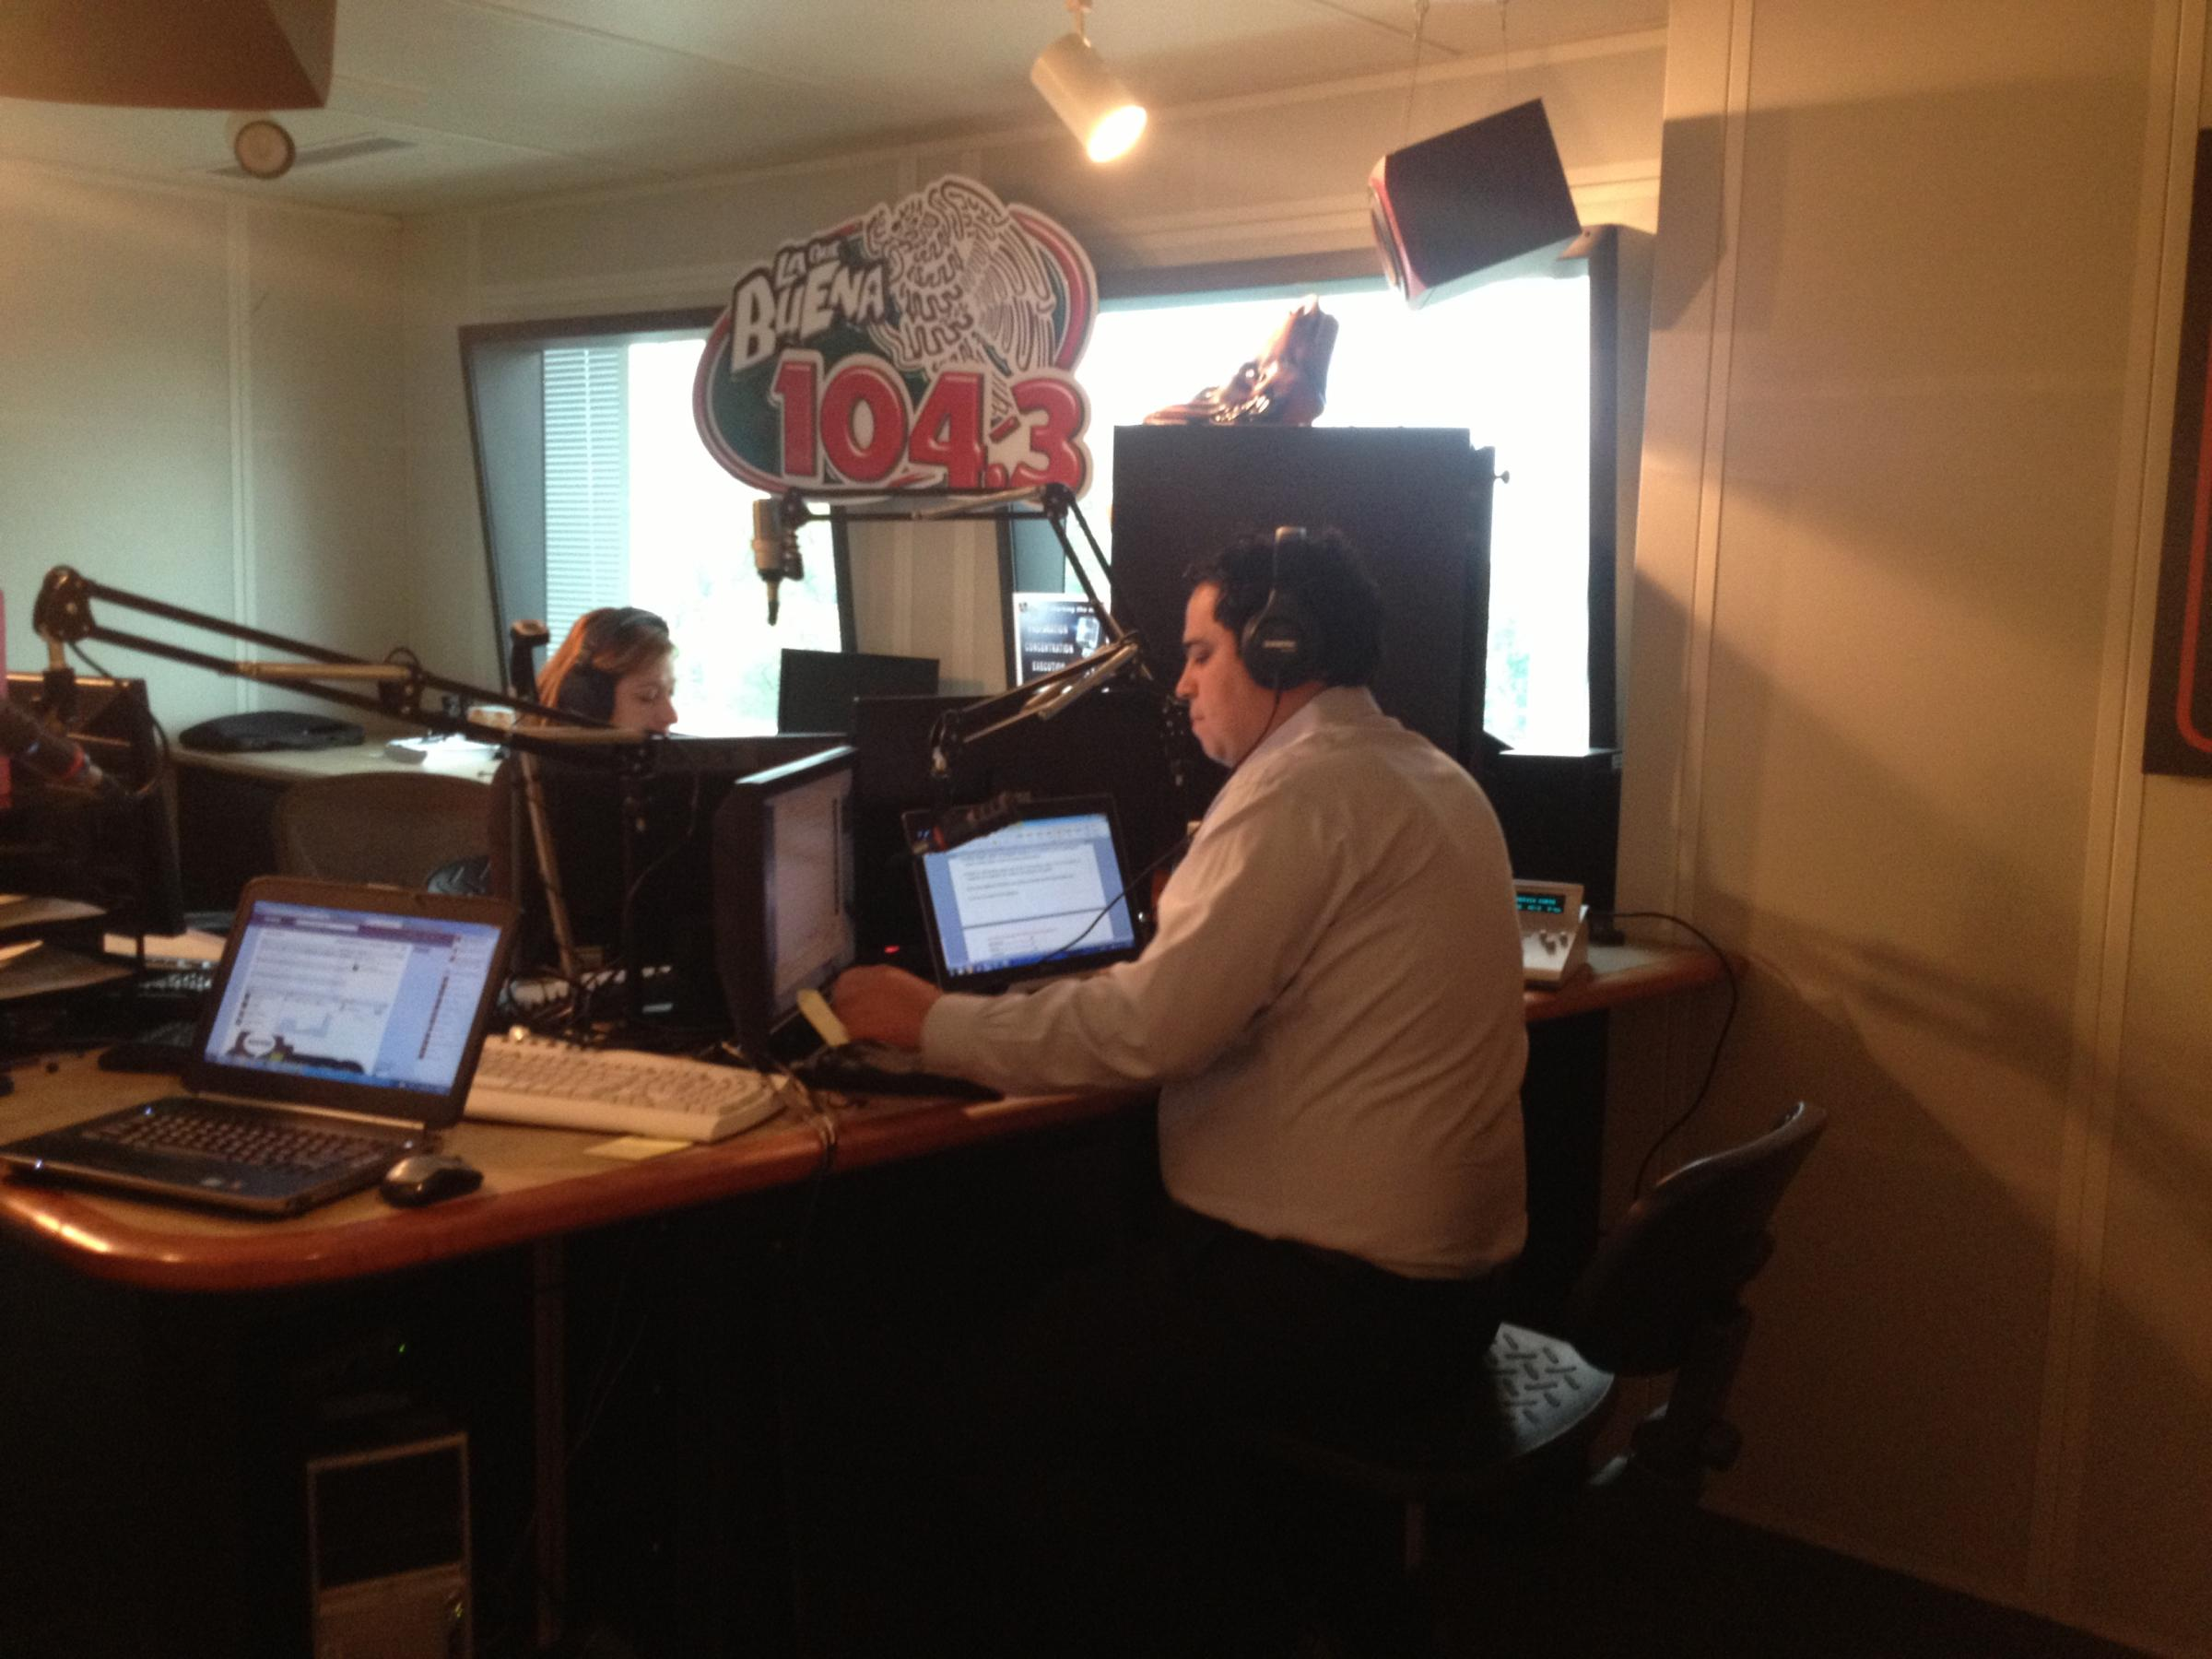 Aisd Spokesman Alex Sanchez Every Sunday He Hosts Educaaustin A Radio Show Aimed At Hispanic Pas In The District